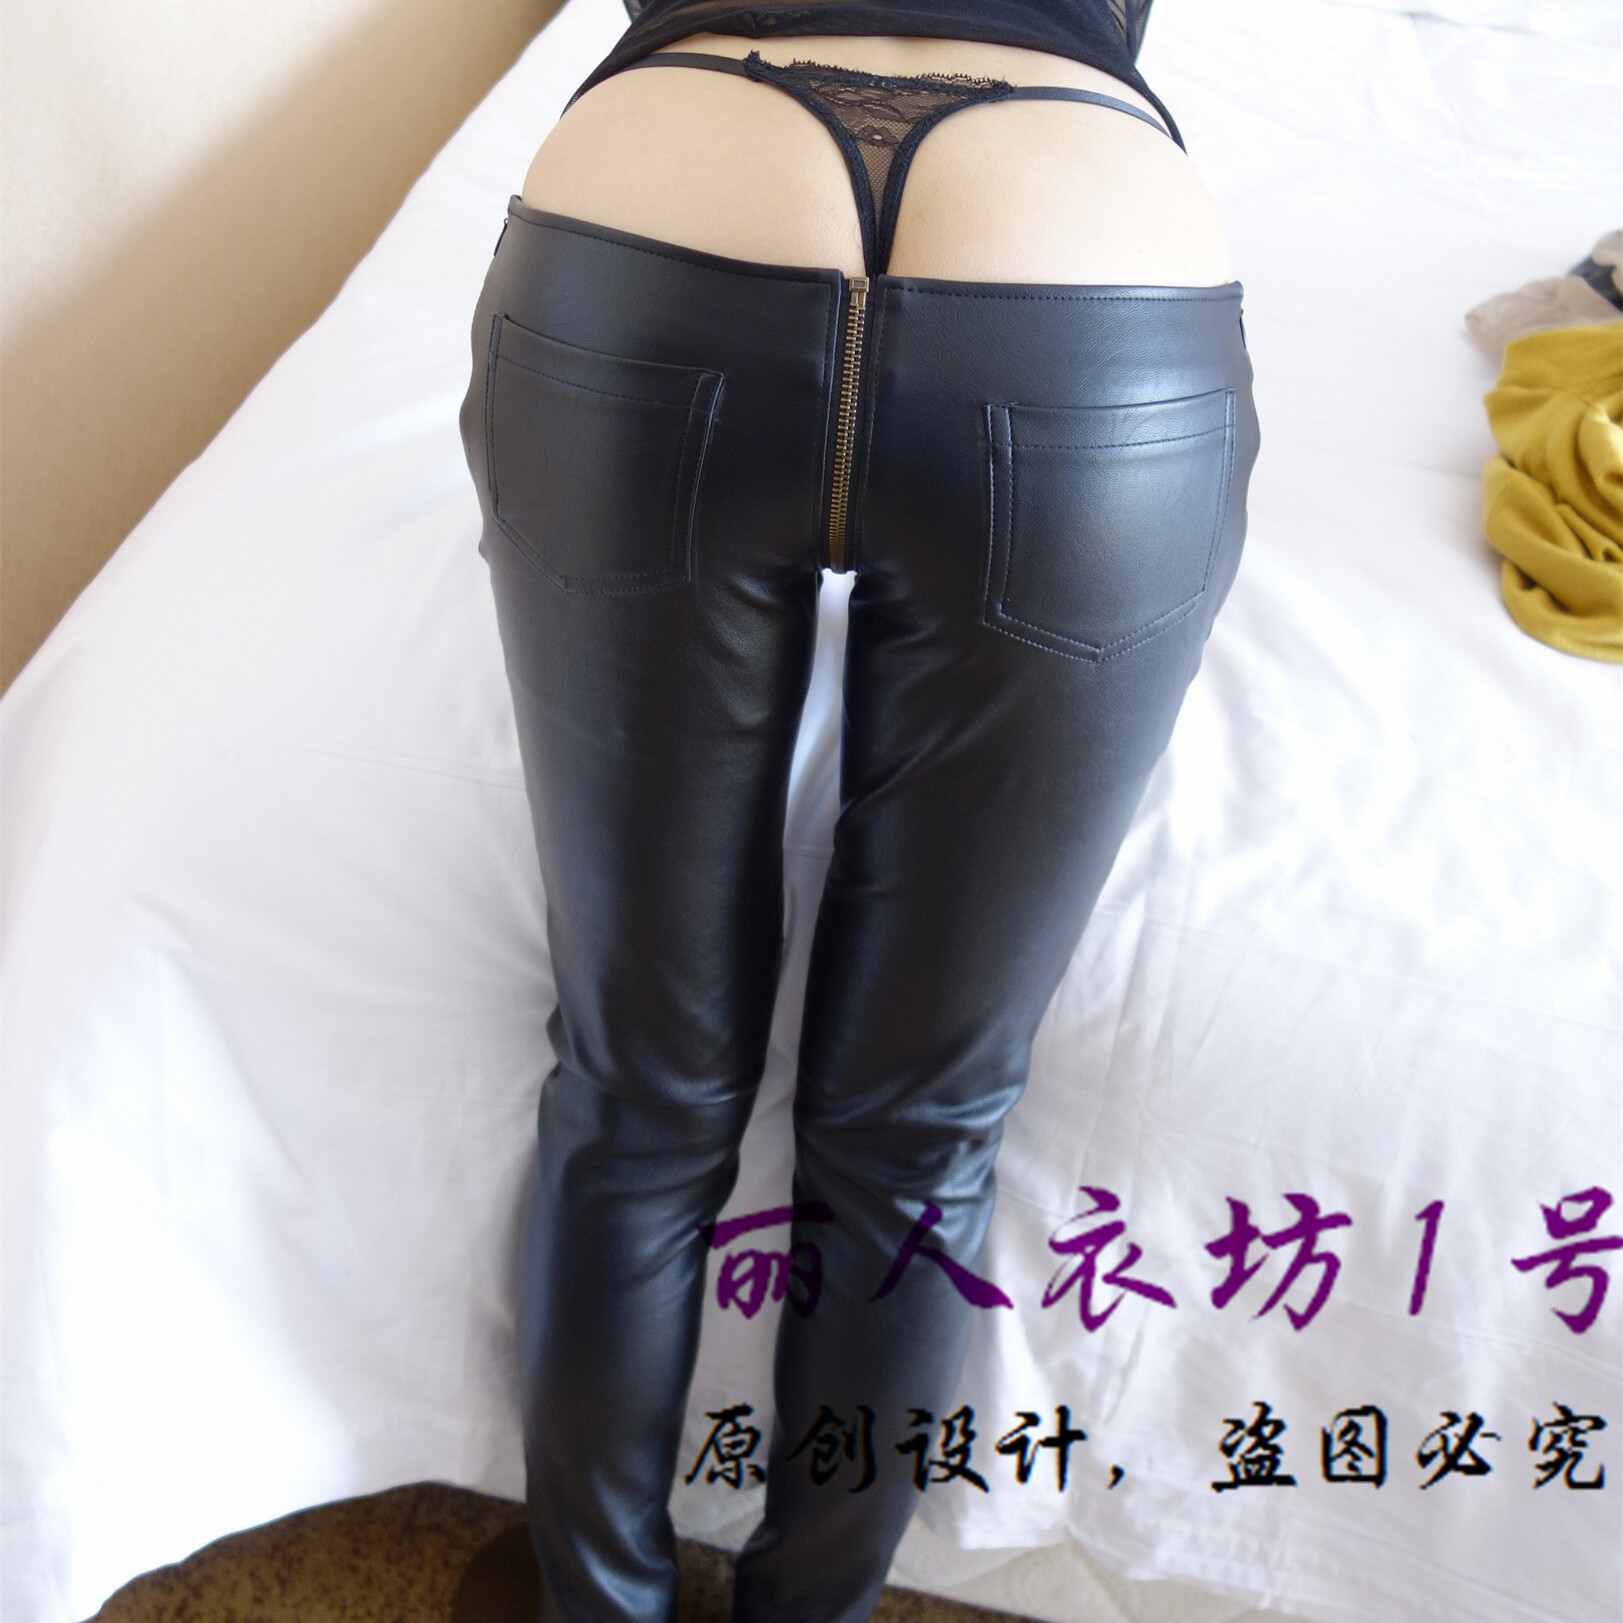 ff960667e7 PU leather trousers female tight black leather pants leather pants pants  feet mouth pencil pants Qiu dongkuan-in Pants & Capris from Women's  Clothing on ...